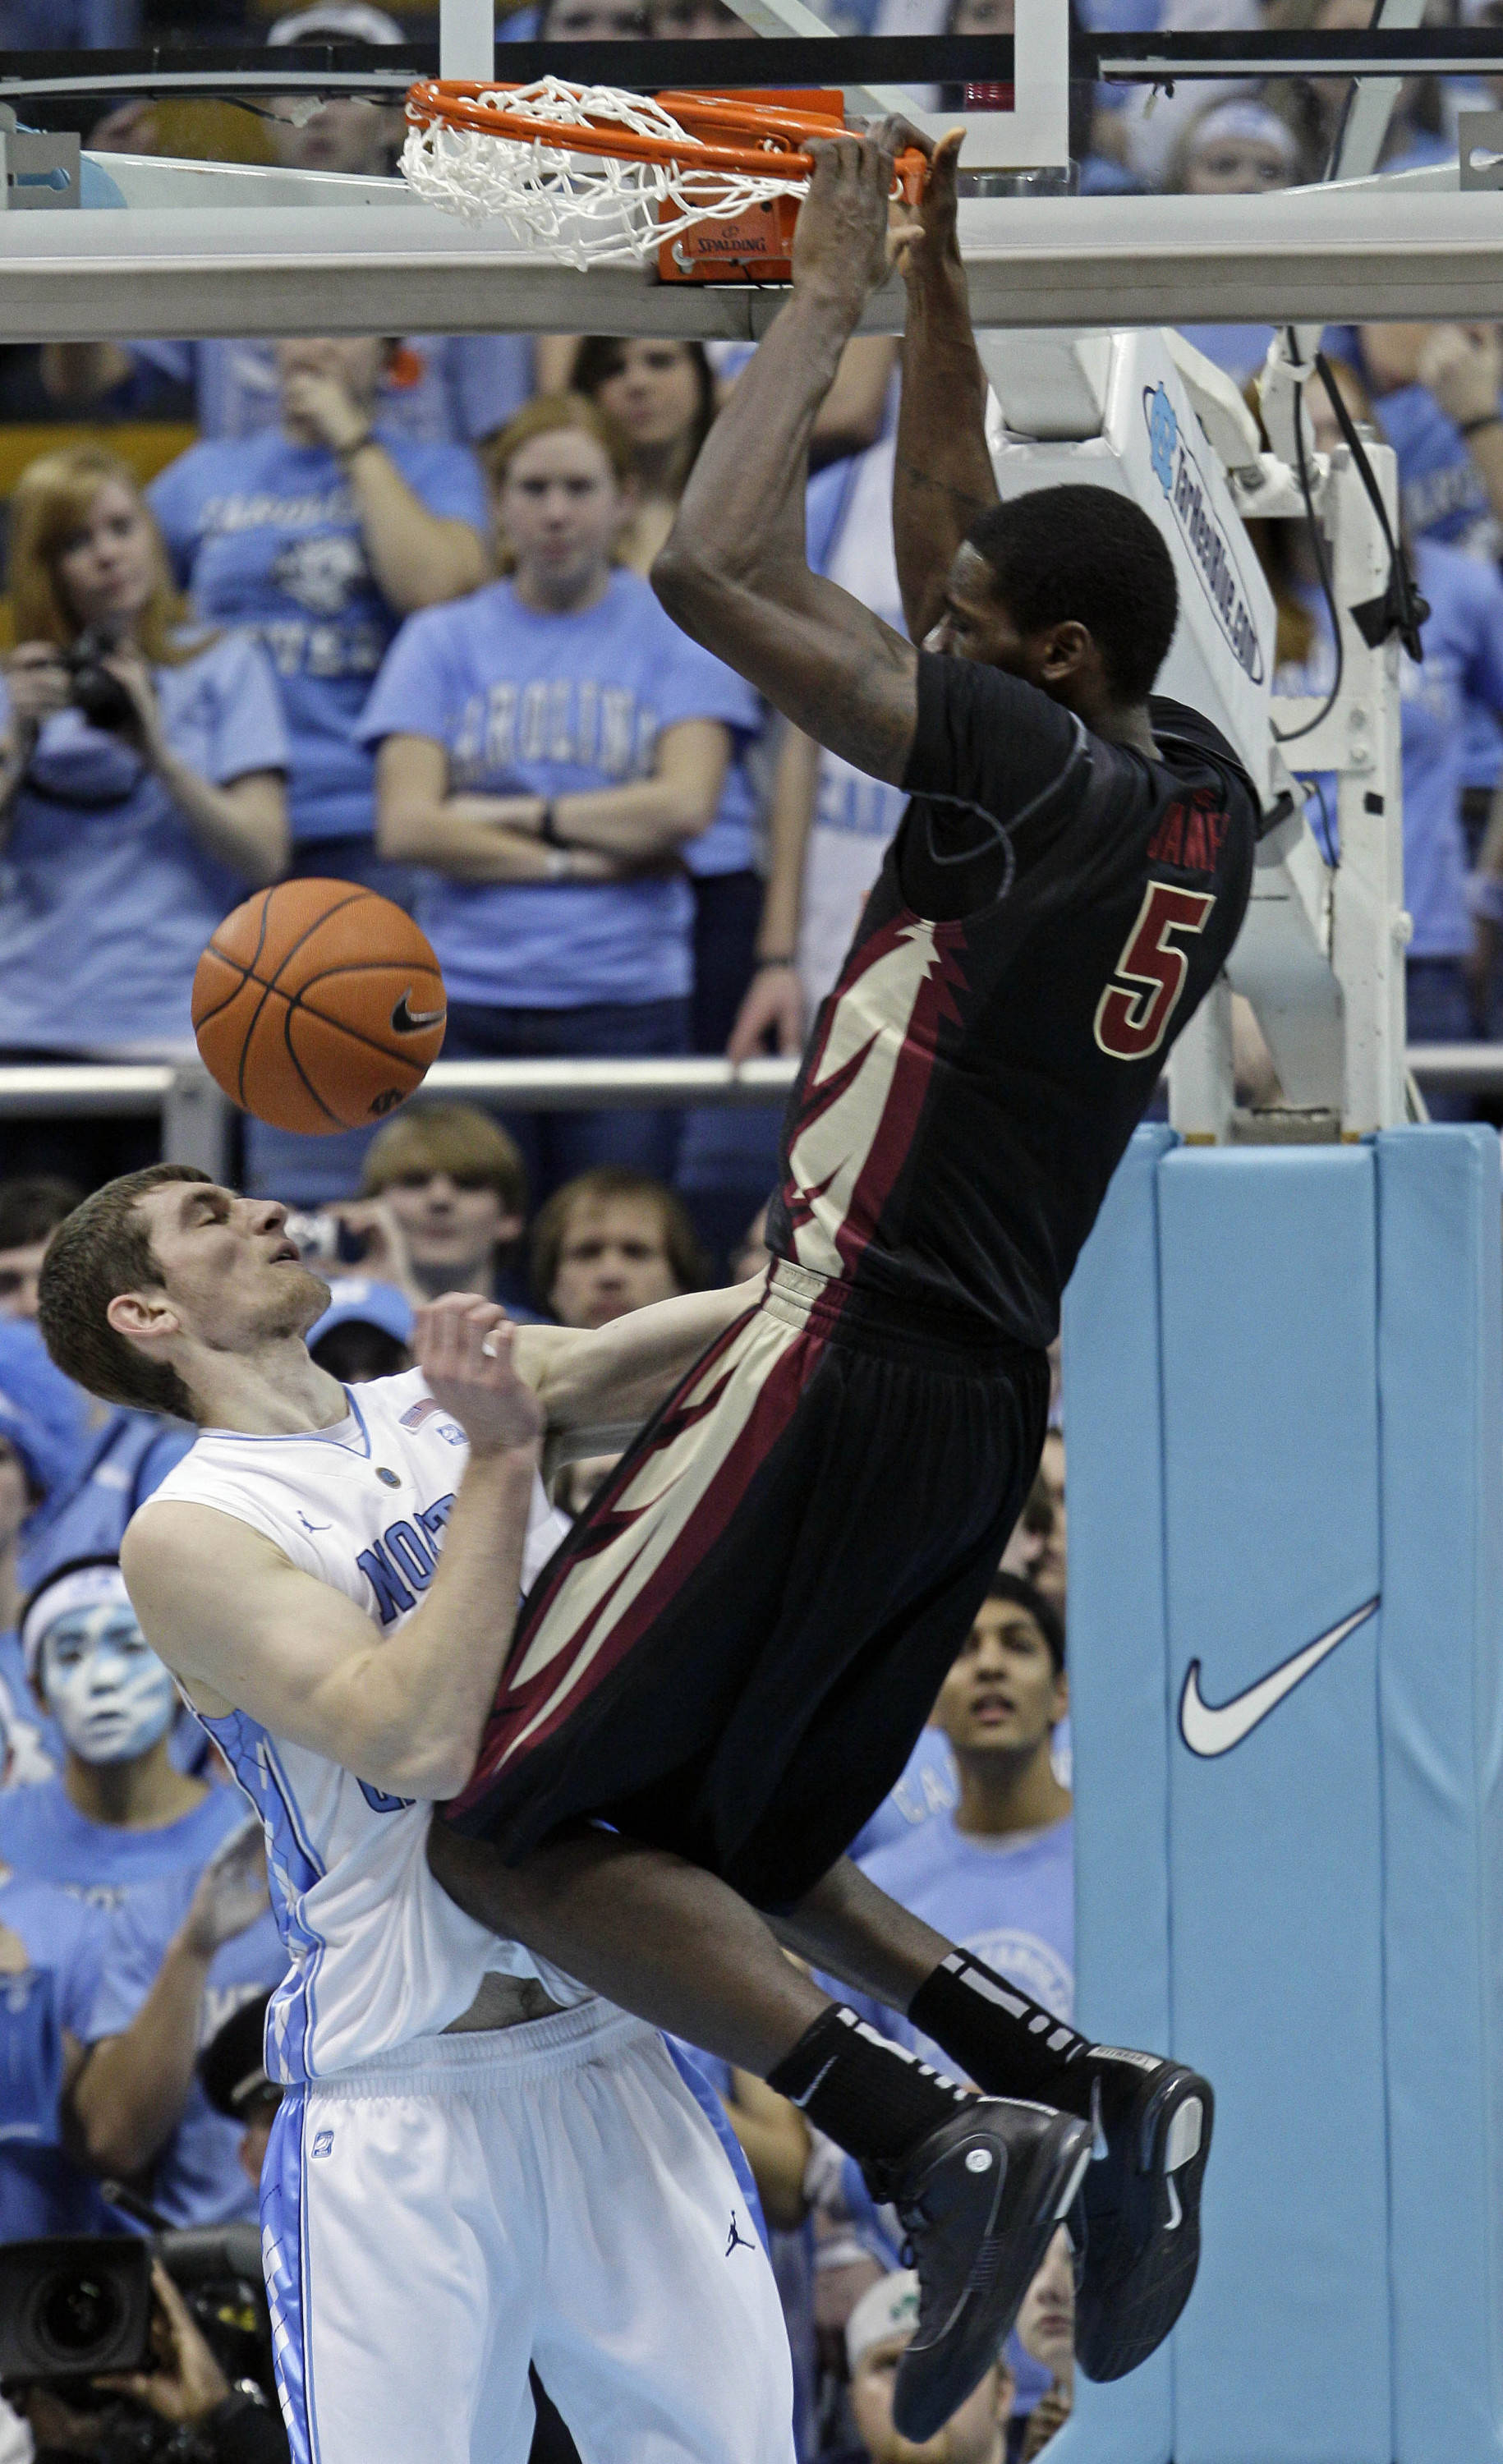 Florida State's Bernard James (5) dunks over North Carolina's Tyler Zeller during the first half of an NCAA college basketball game, Sunday, Feb. 6, 2011, in Chapel Hill, N.C. (AP Photo/Gerry Broome)